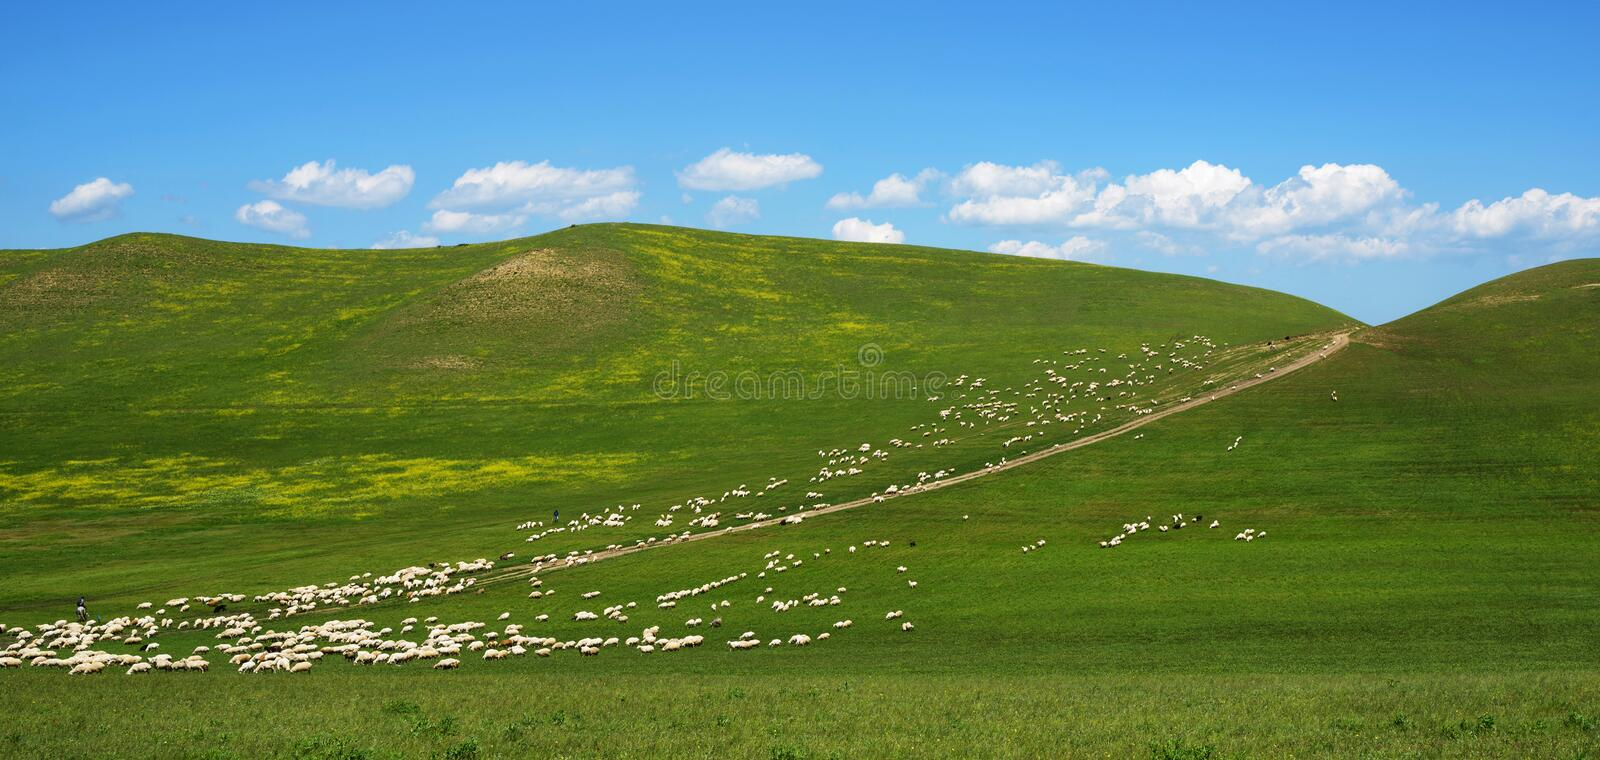 Large flock of sheep grazing on the hill royalty free stock photo